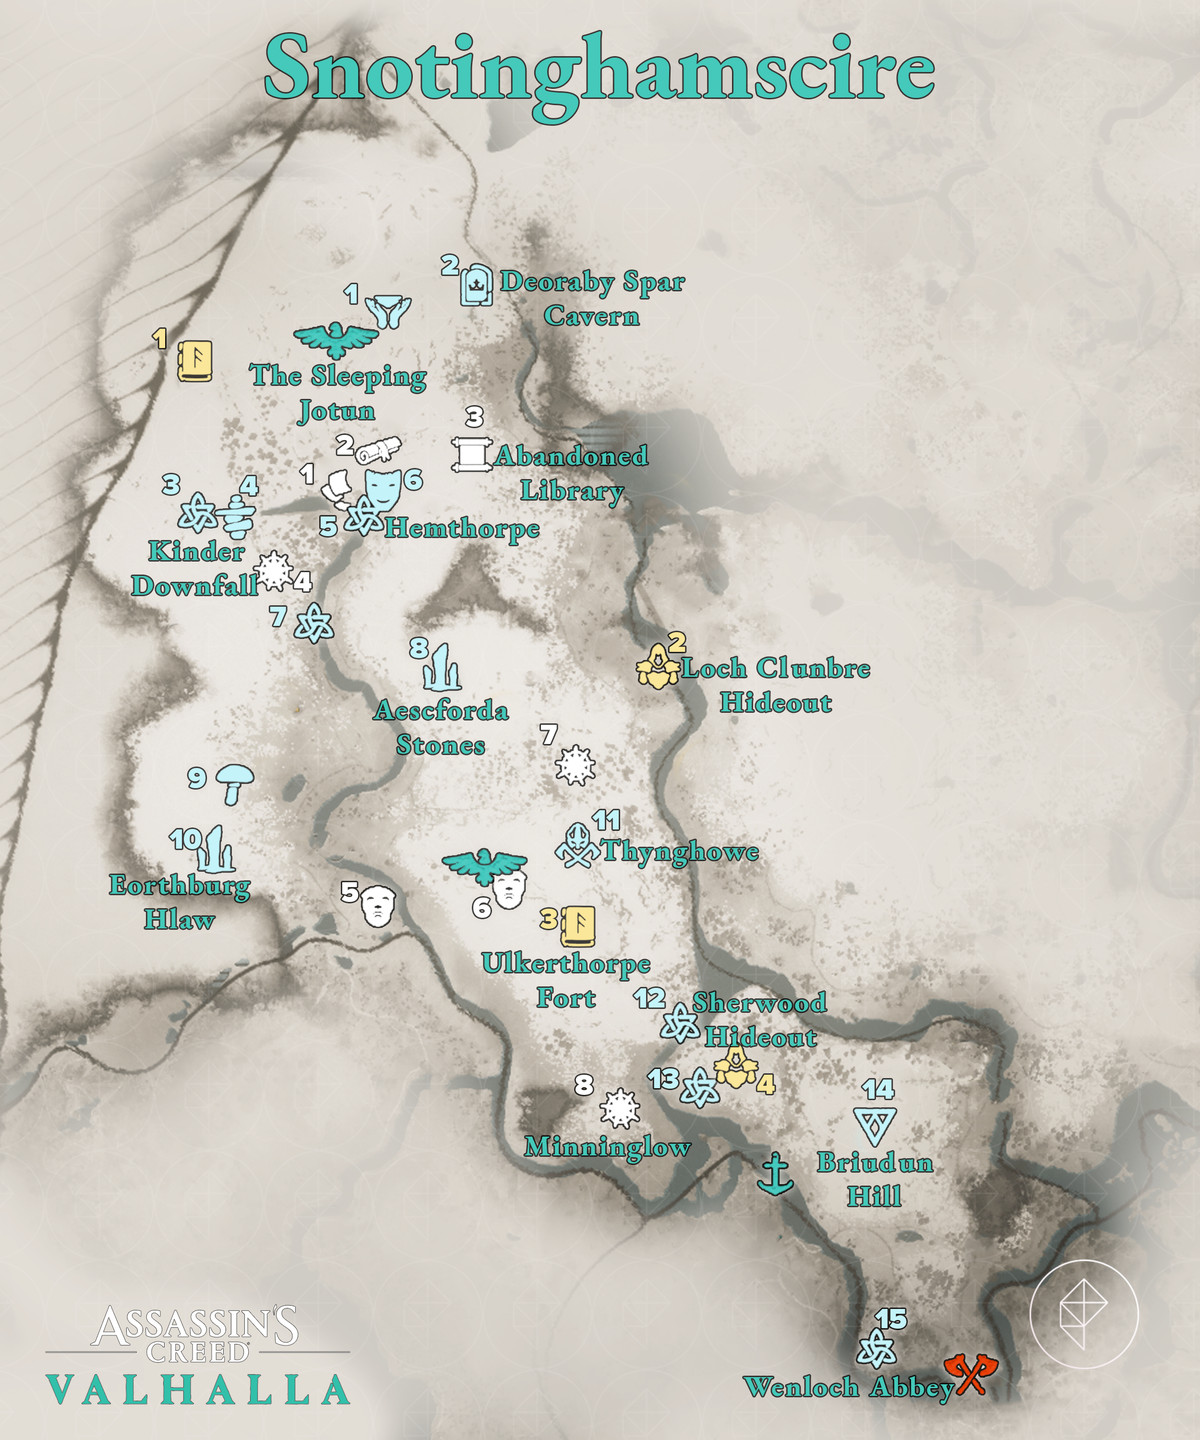 Snotinghamscire Wealth, Mysteries, and Artifacts locations map